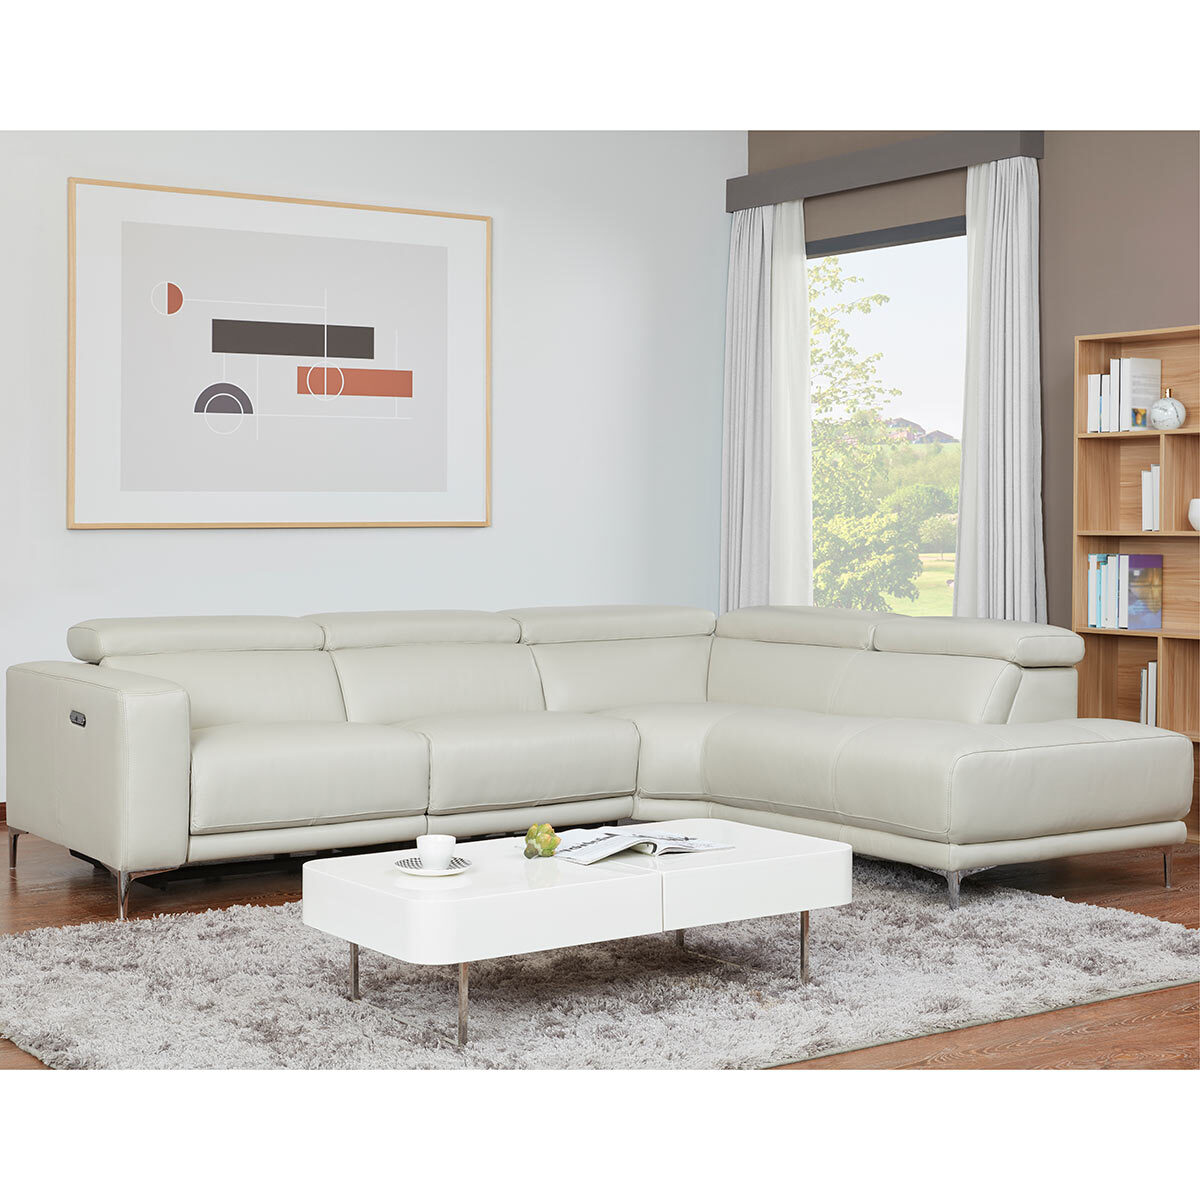 kuka redland leather reclining sectional sofa with adjustable headrests right facing costco uk